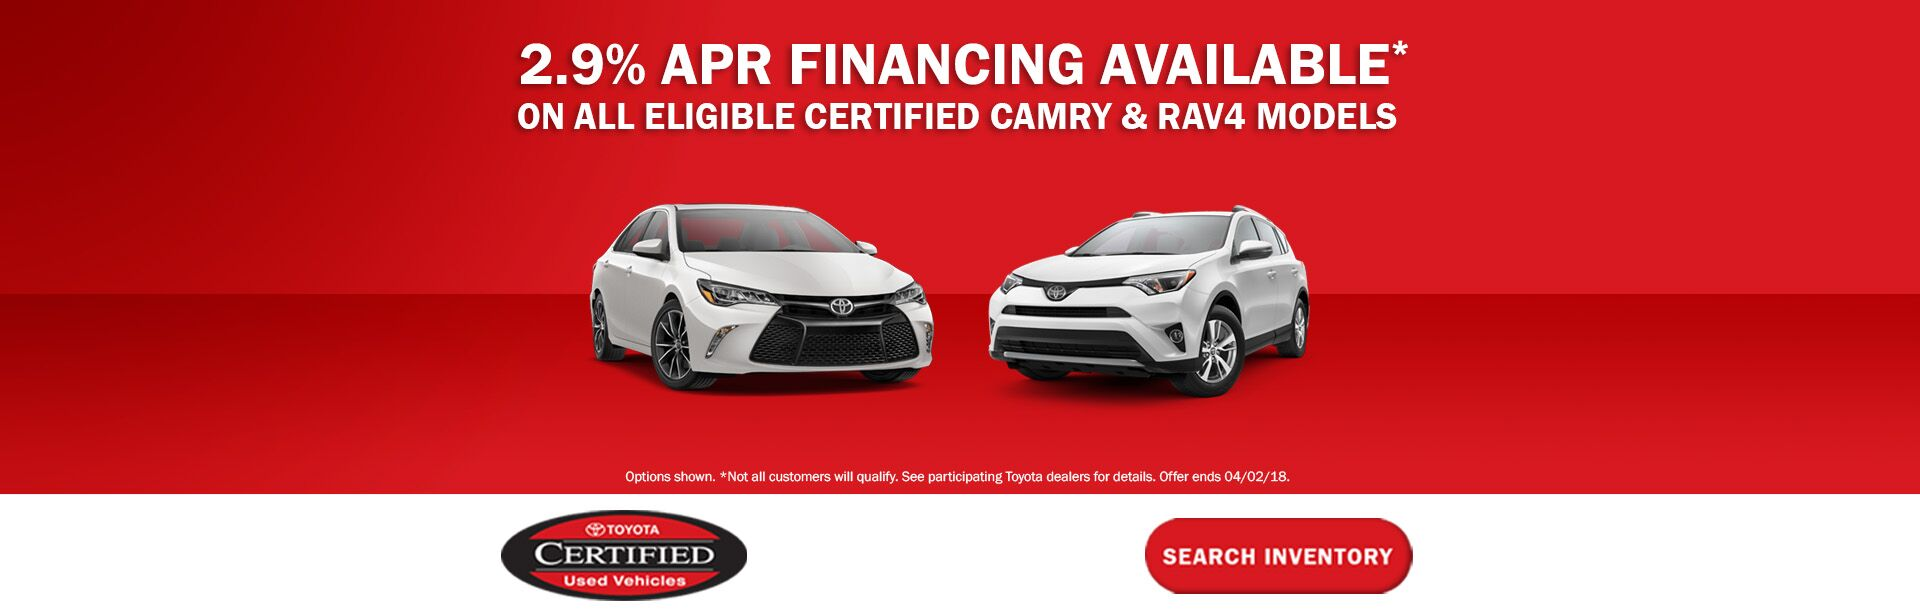 Rav4 and Camry